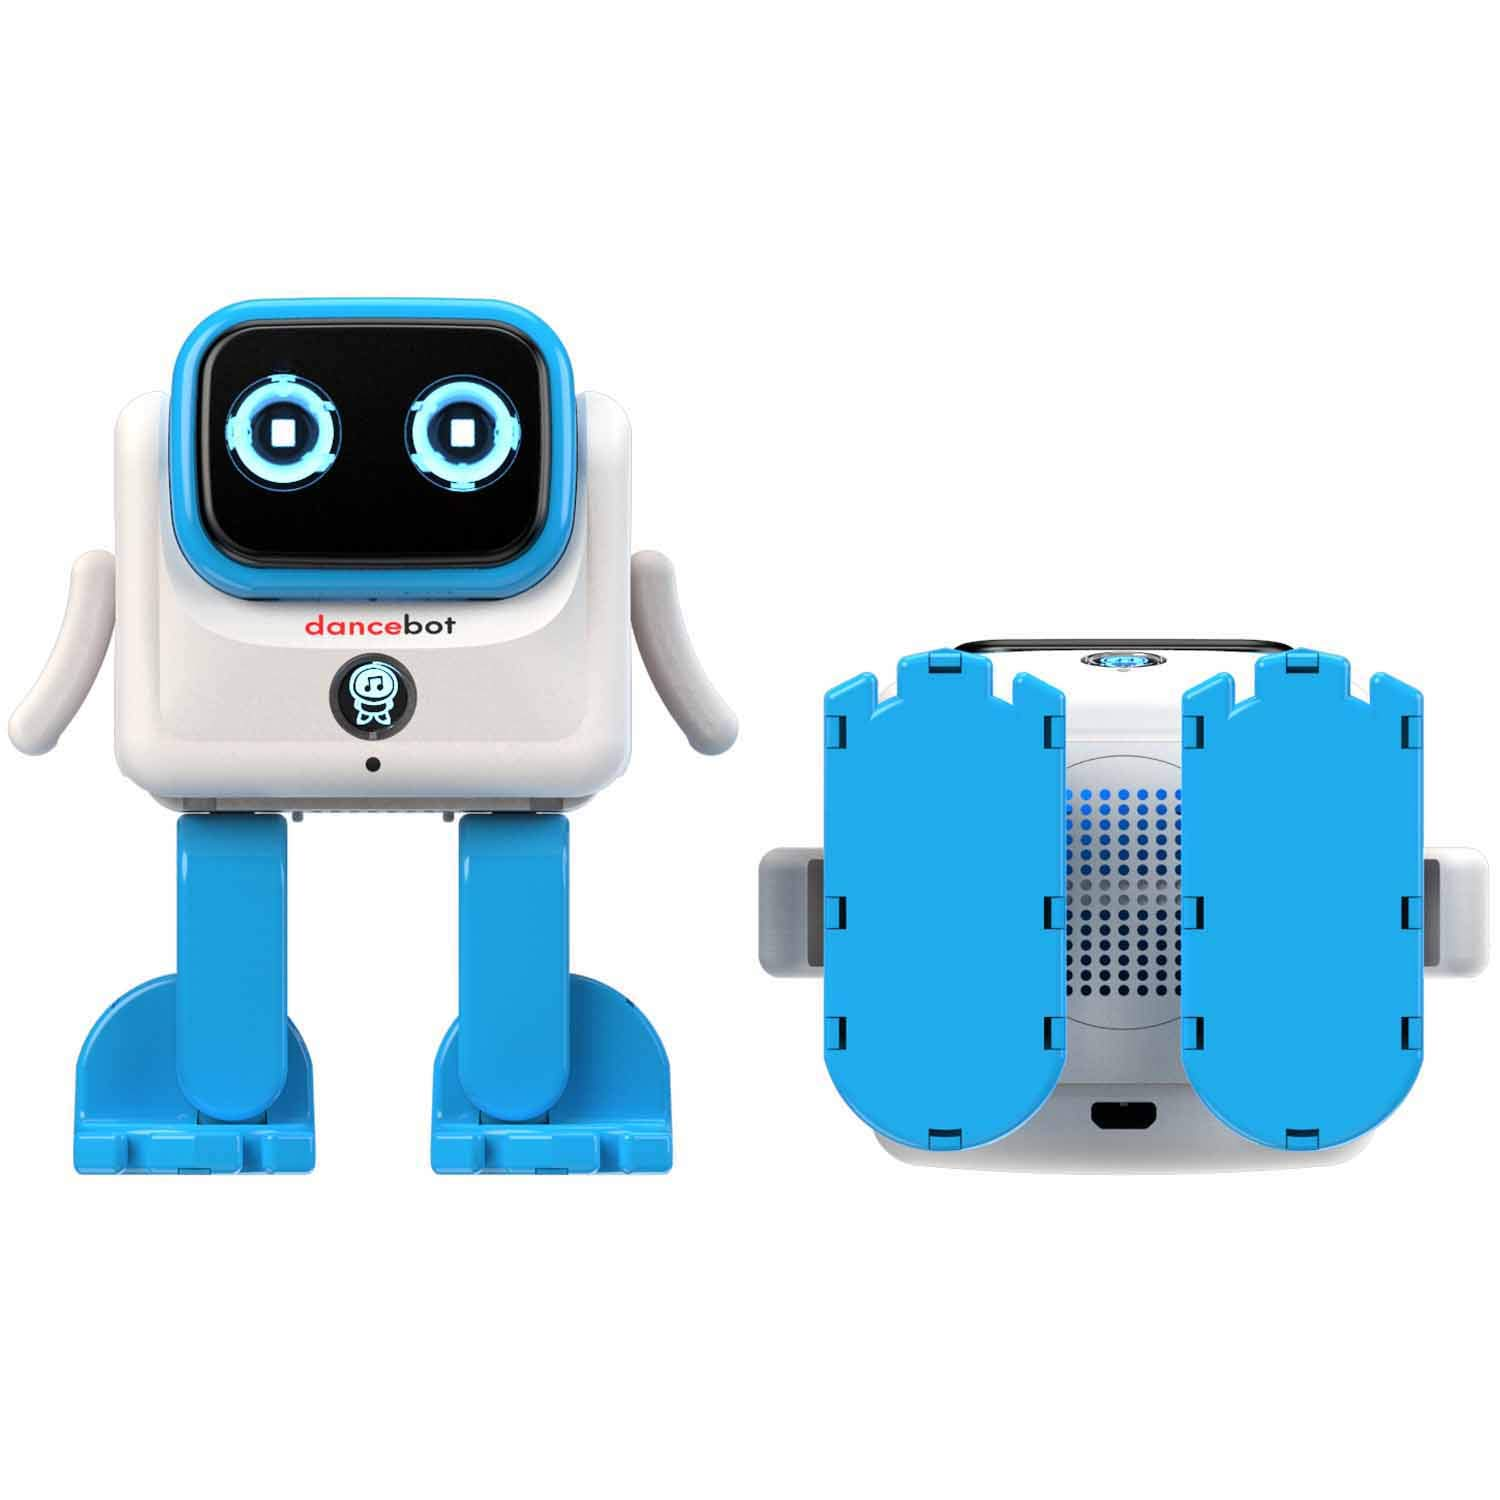 Echeers Kids Toys Dancing Robot for Boys and Girls, Educational Dancing Robot Toys for Kids with Stereo Bluetooth Speakers, Rechargeable Dance Robot Follow Music Beats Rhythm, All Age Children - Blue by ECHEERS (Image #10)